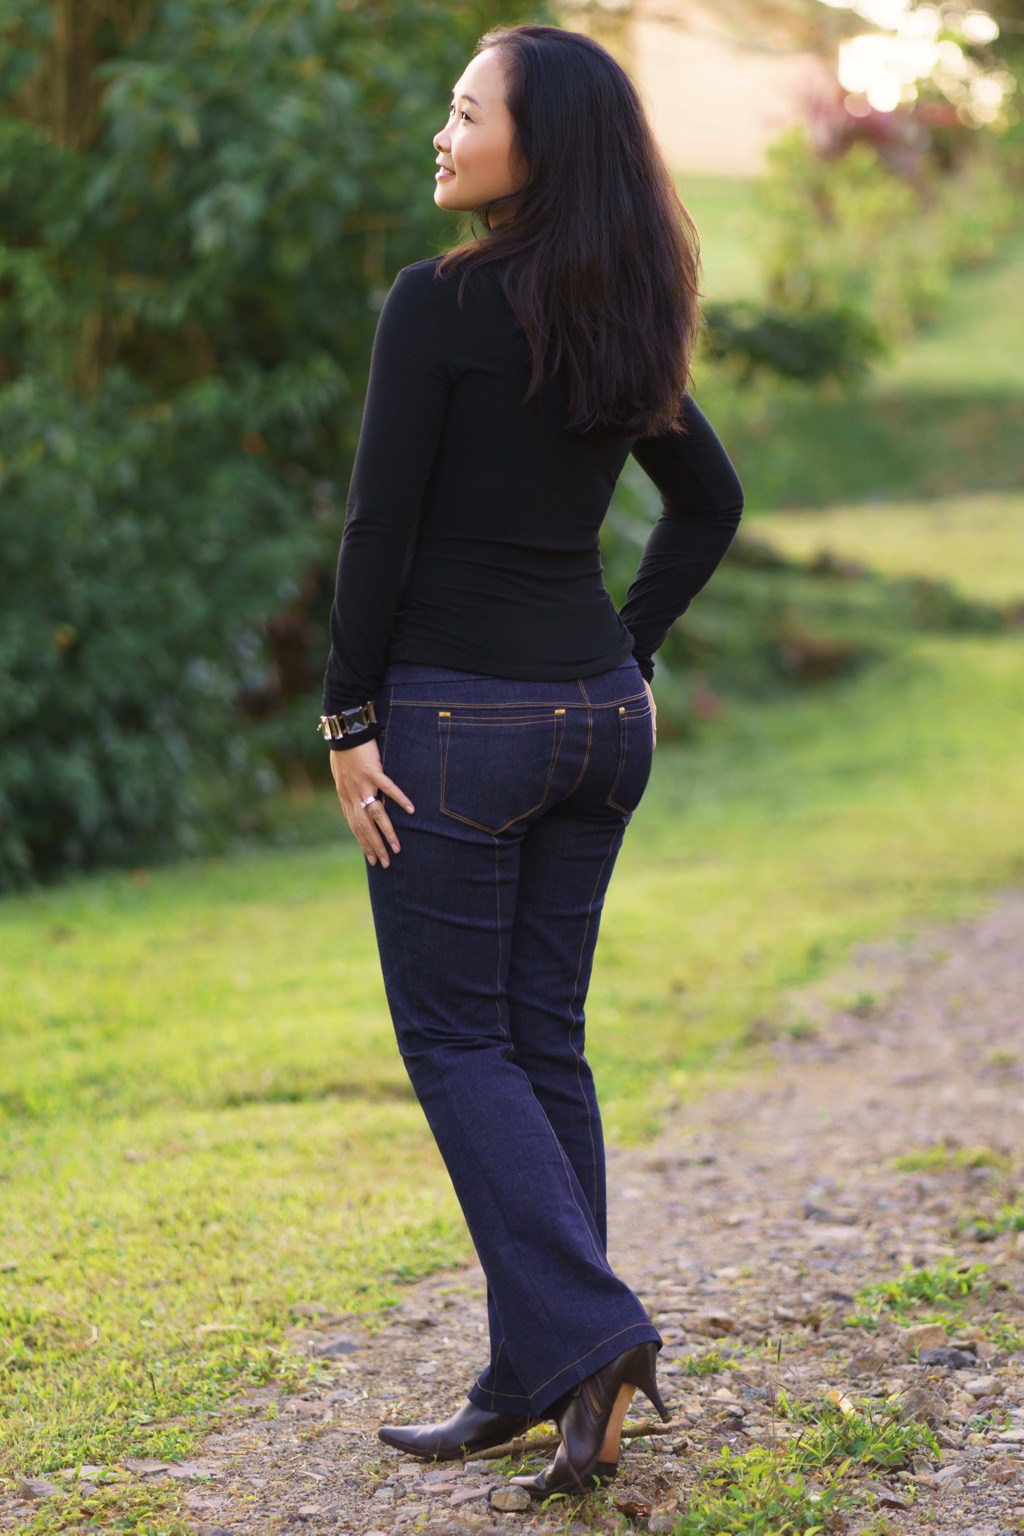 Mountain-View-Pull-on-Jeans by Itch to Stitch